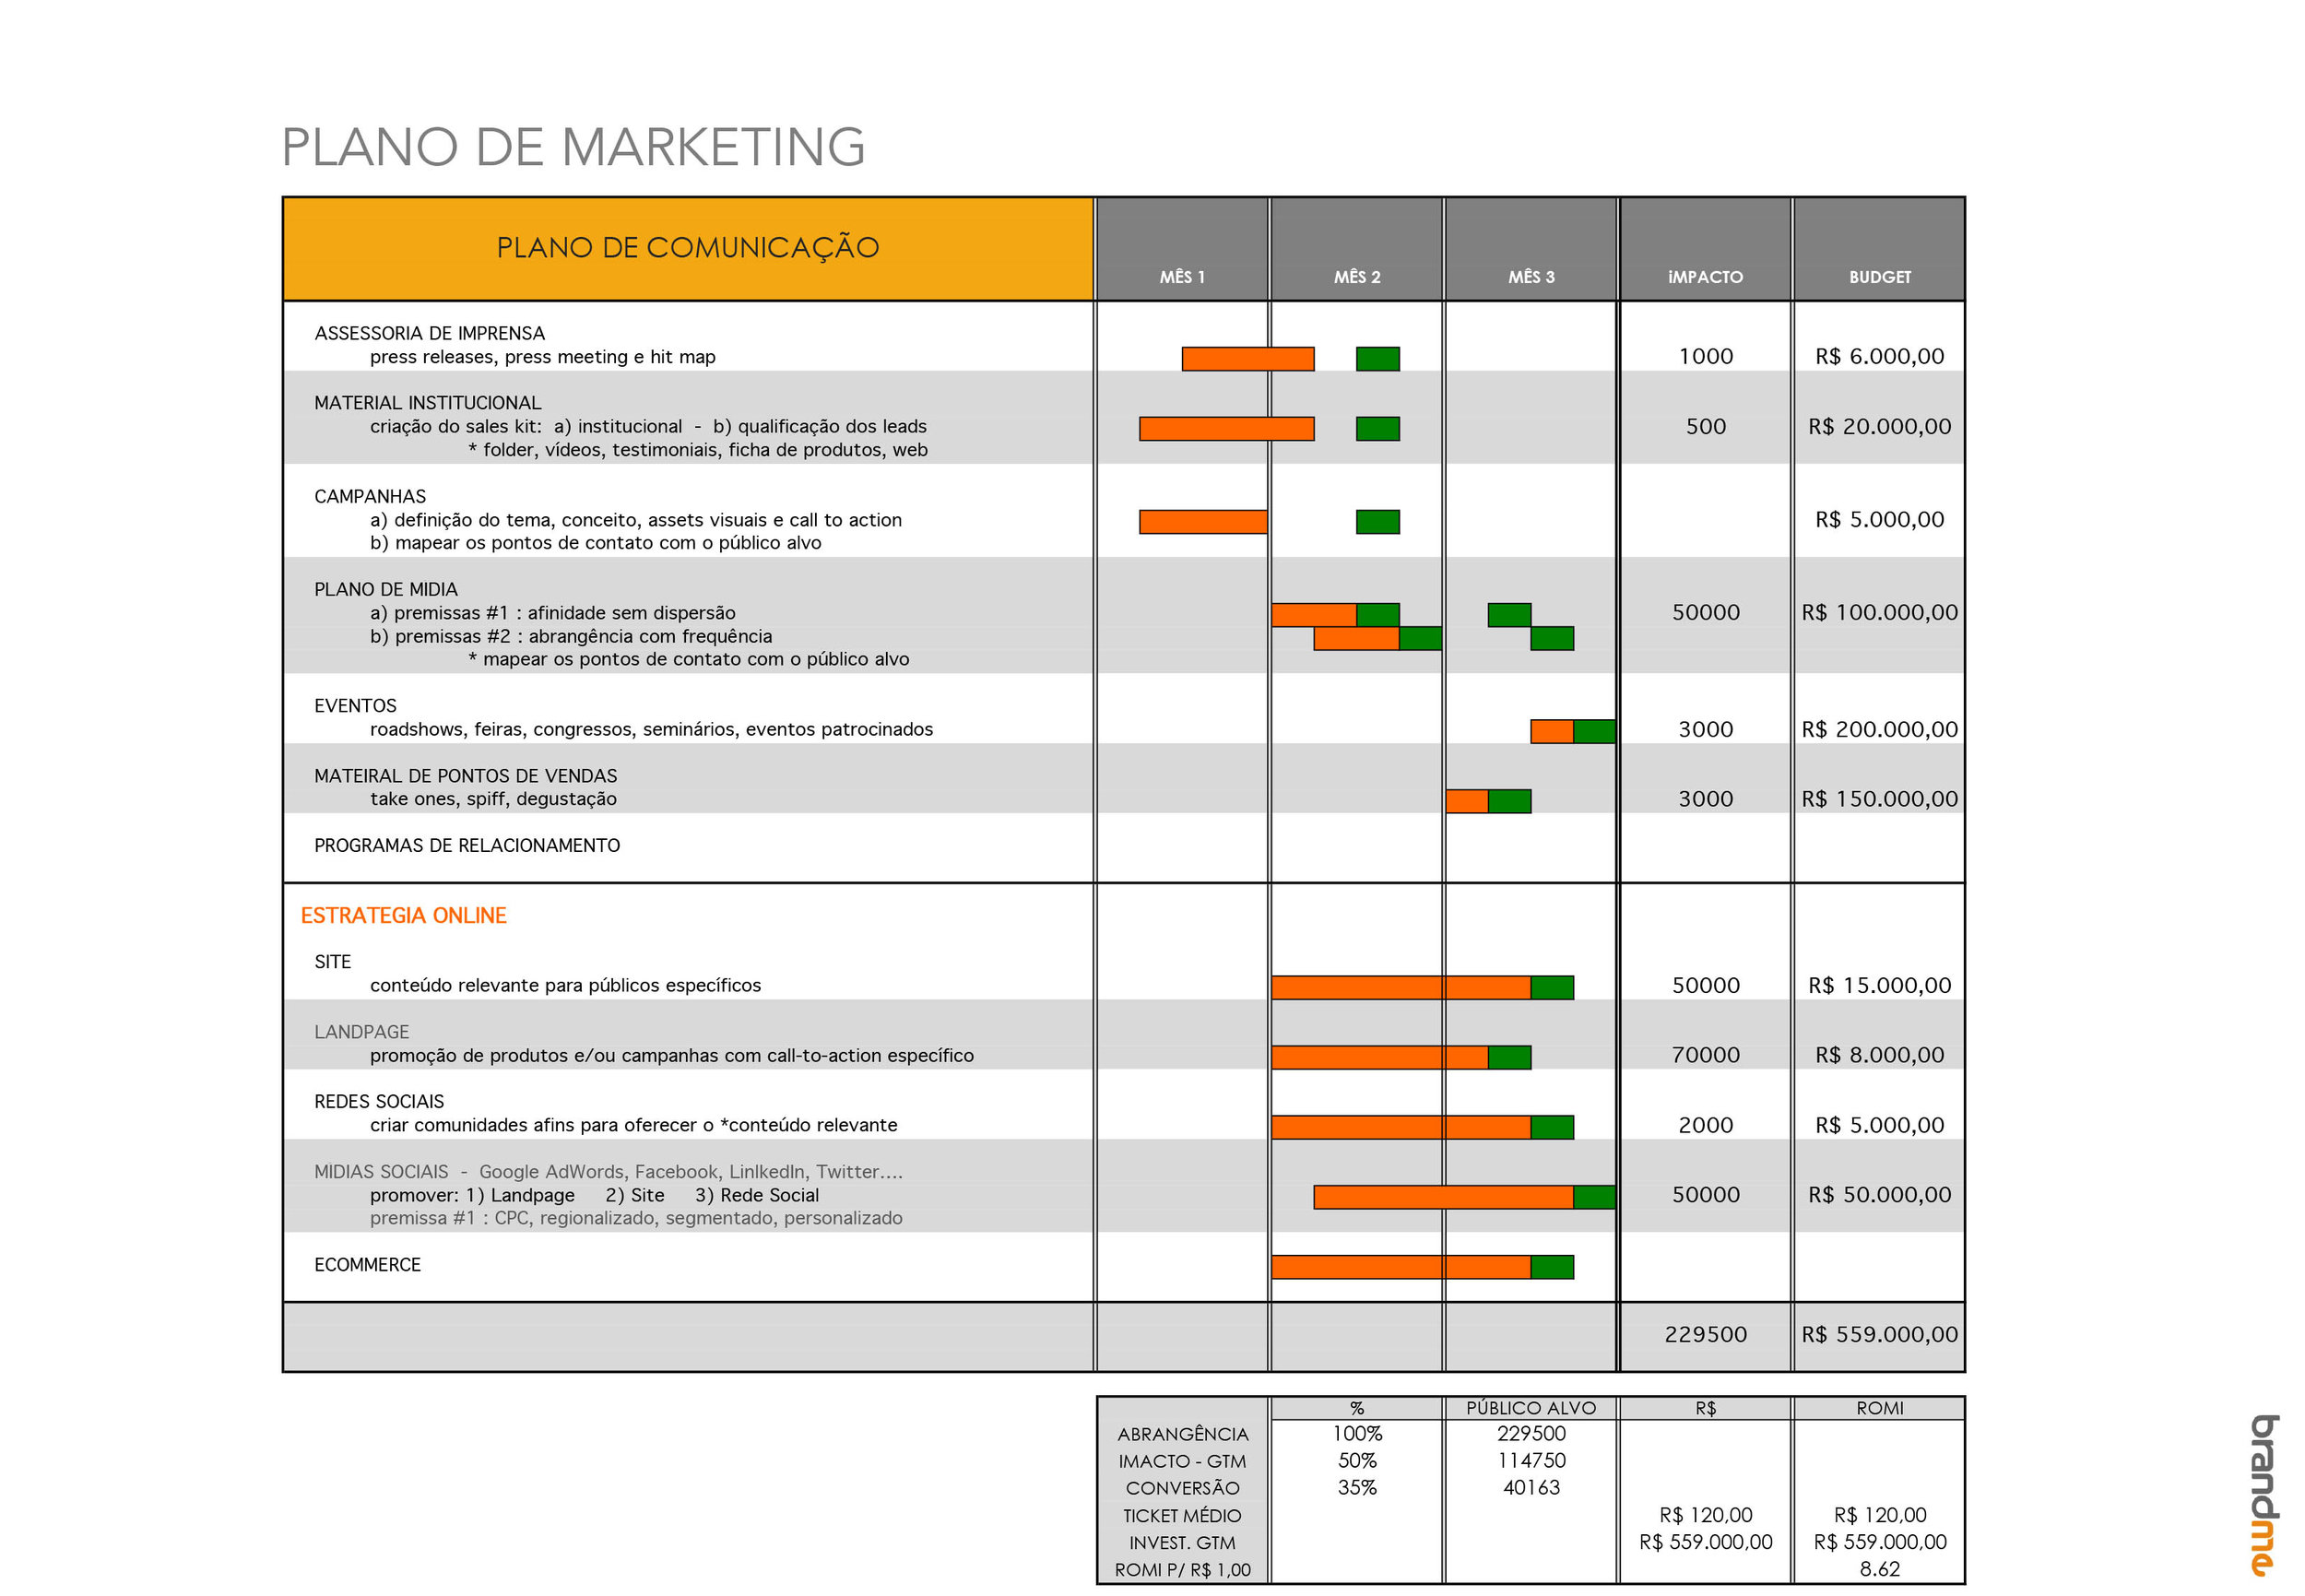 Plano de Marketing - Planejamento Estratégico e de Marketing